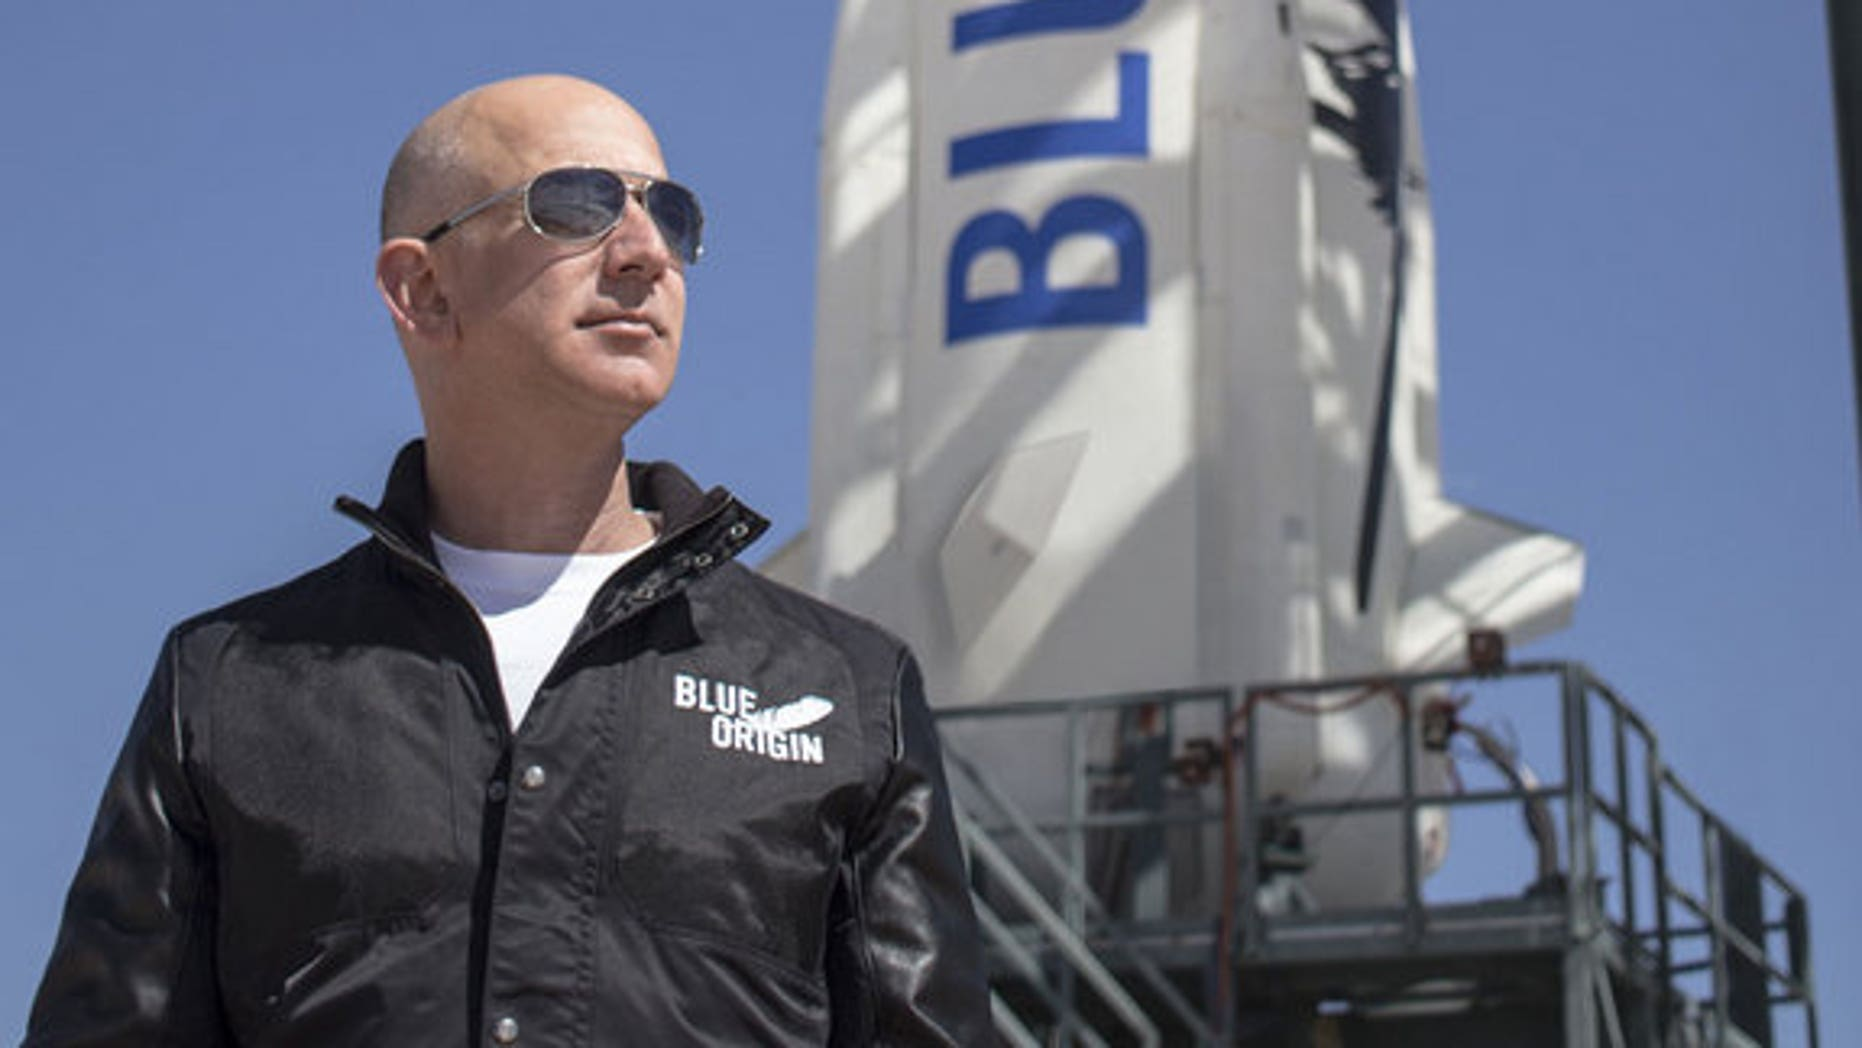 Jeff Bezos, the billionaire founder and CEO of Amazon.com, is also the founder of the private commercial spaceflight company Blue Origin.